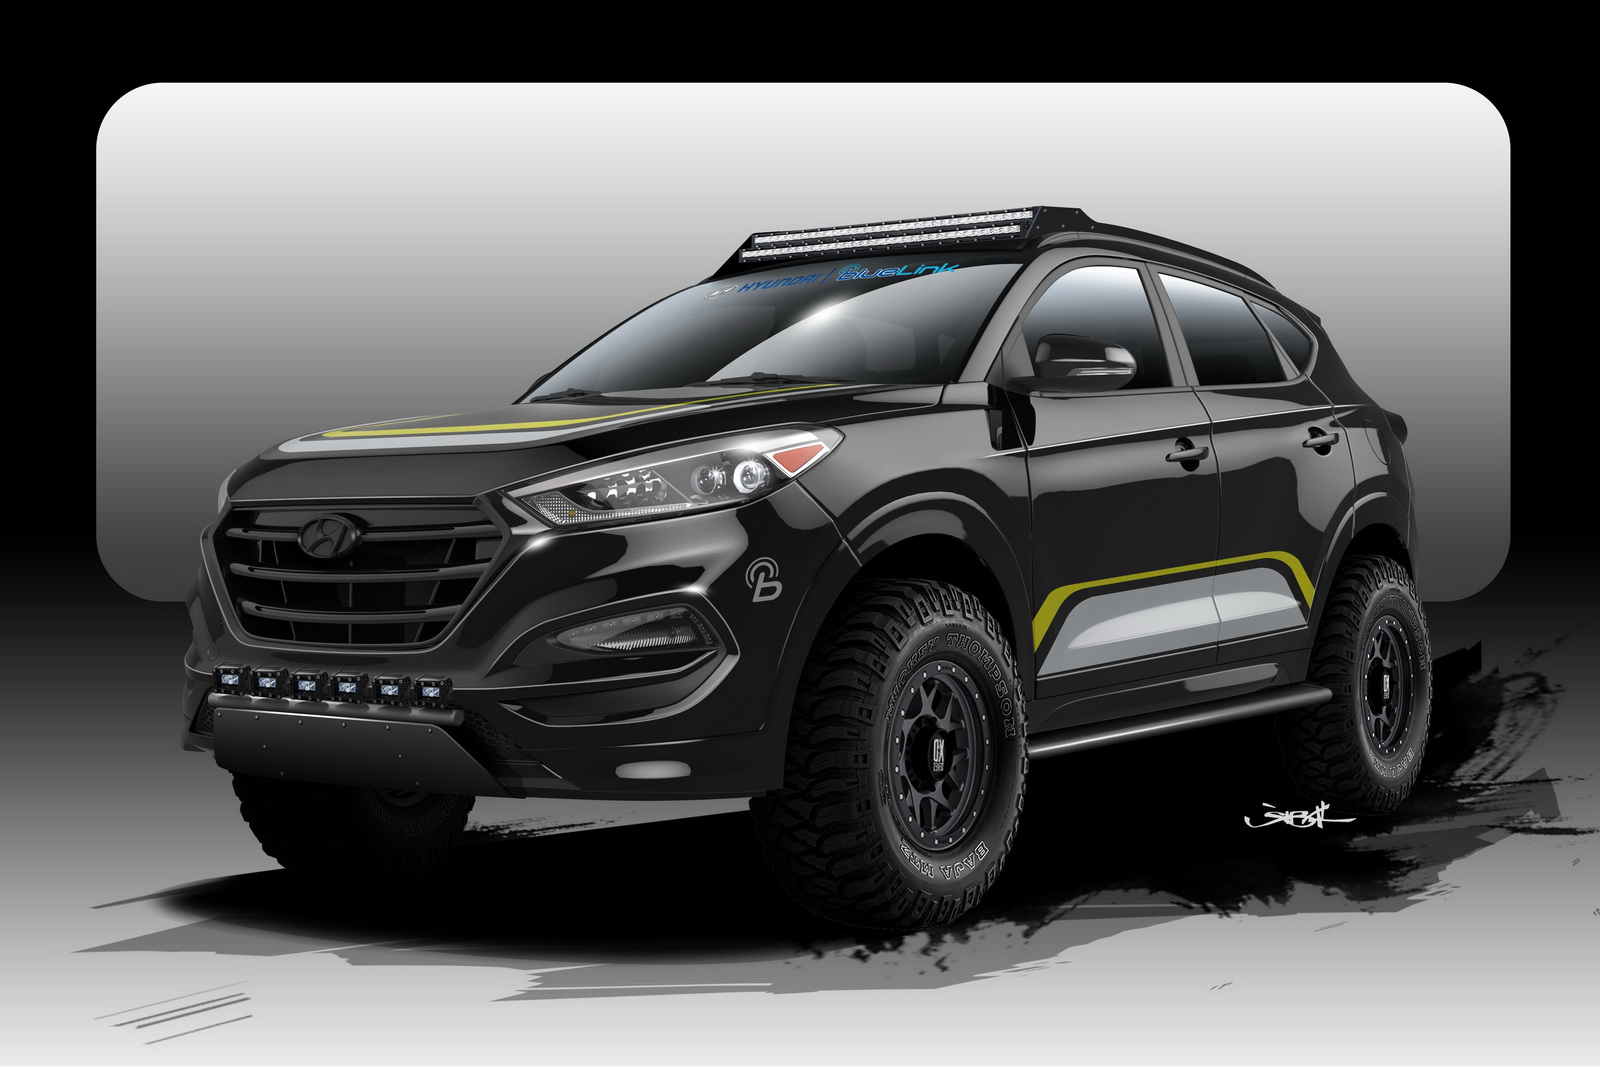 2012 Ford Escape Black Rims >> Hyundai Tucson Goes to SEMA the Off-Road Way - autoevolution